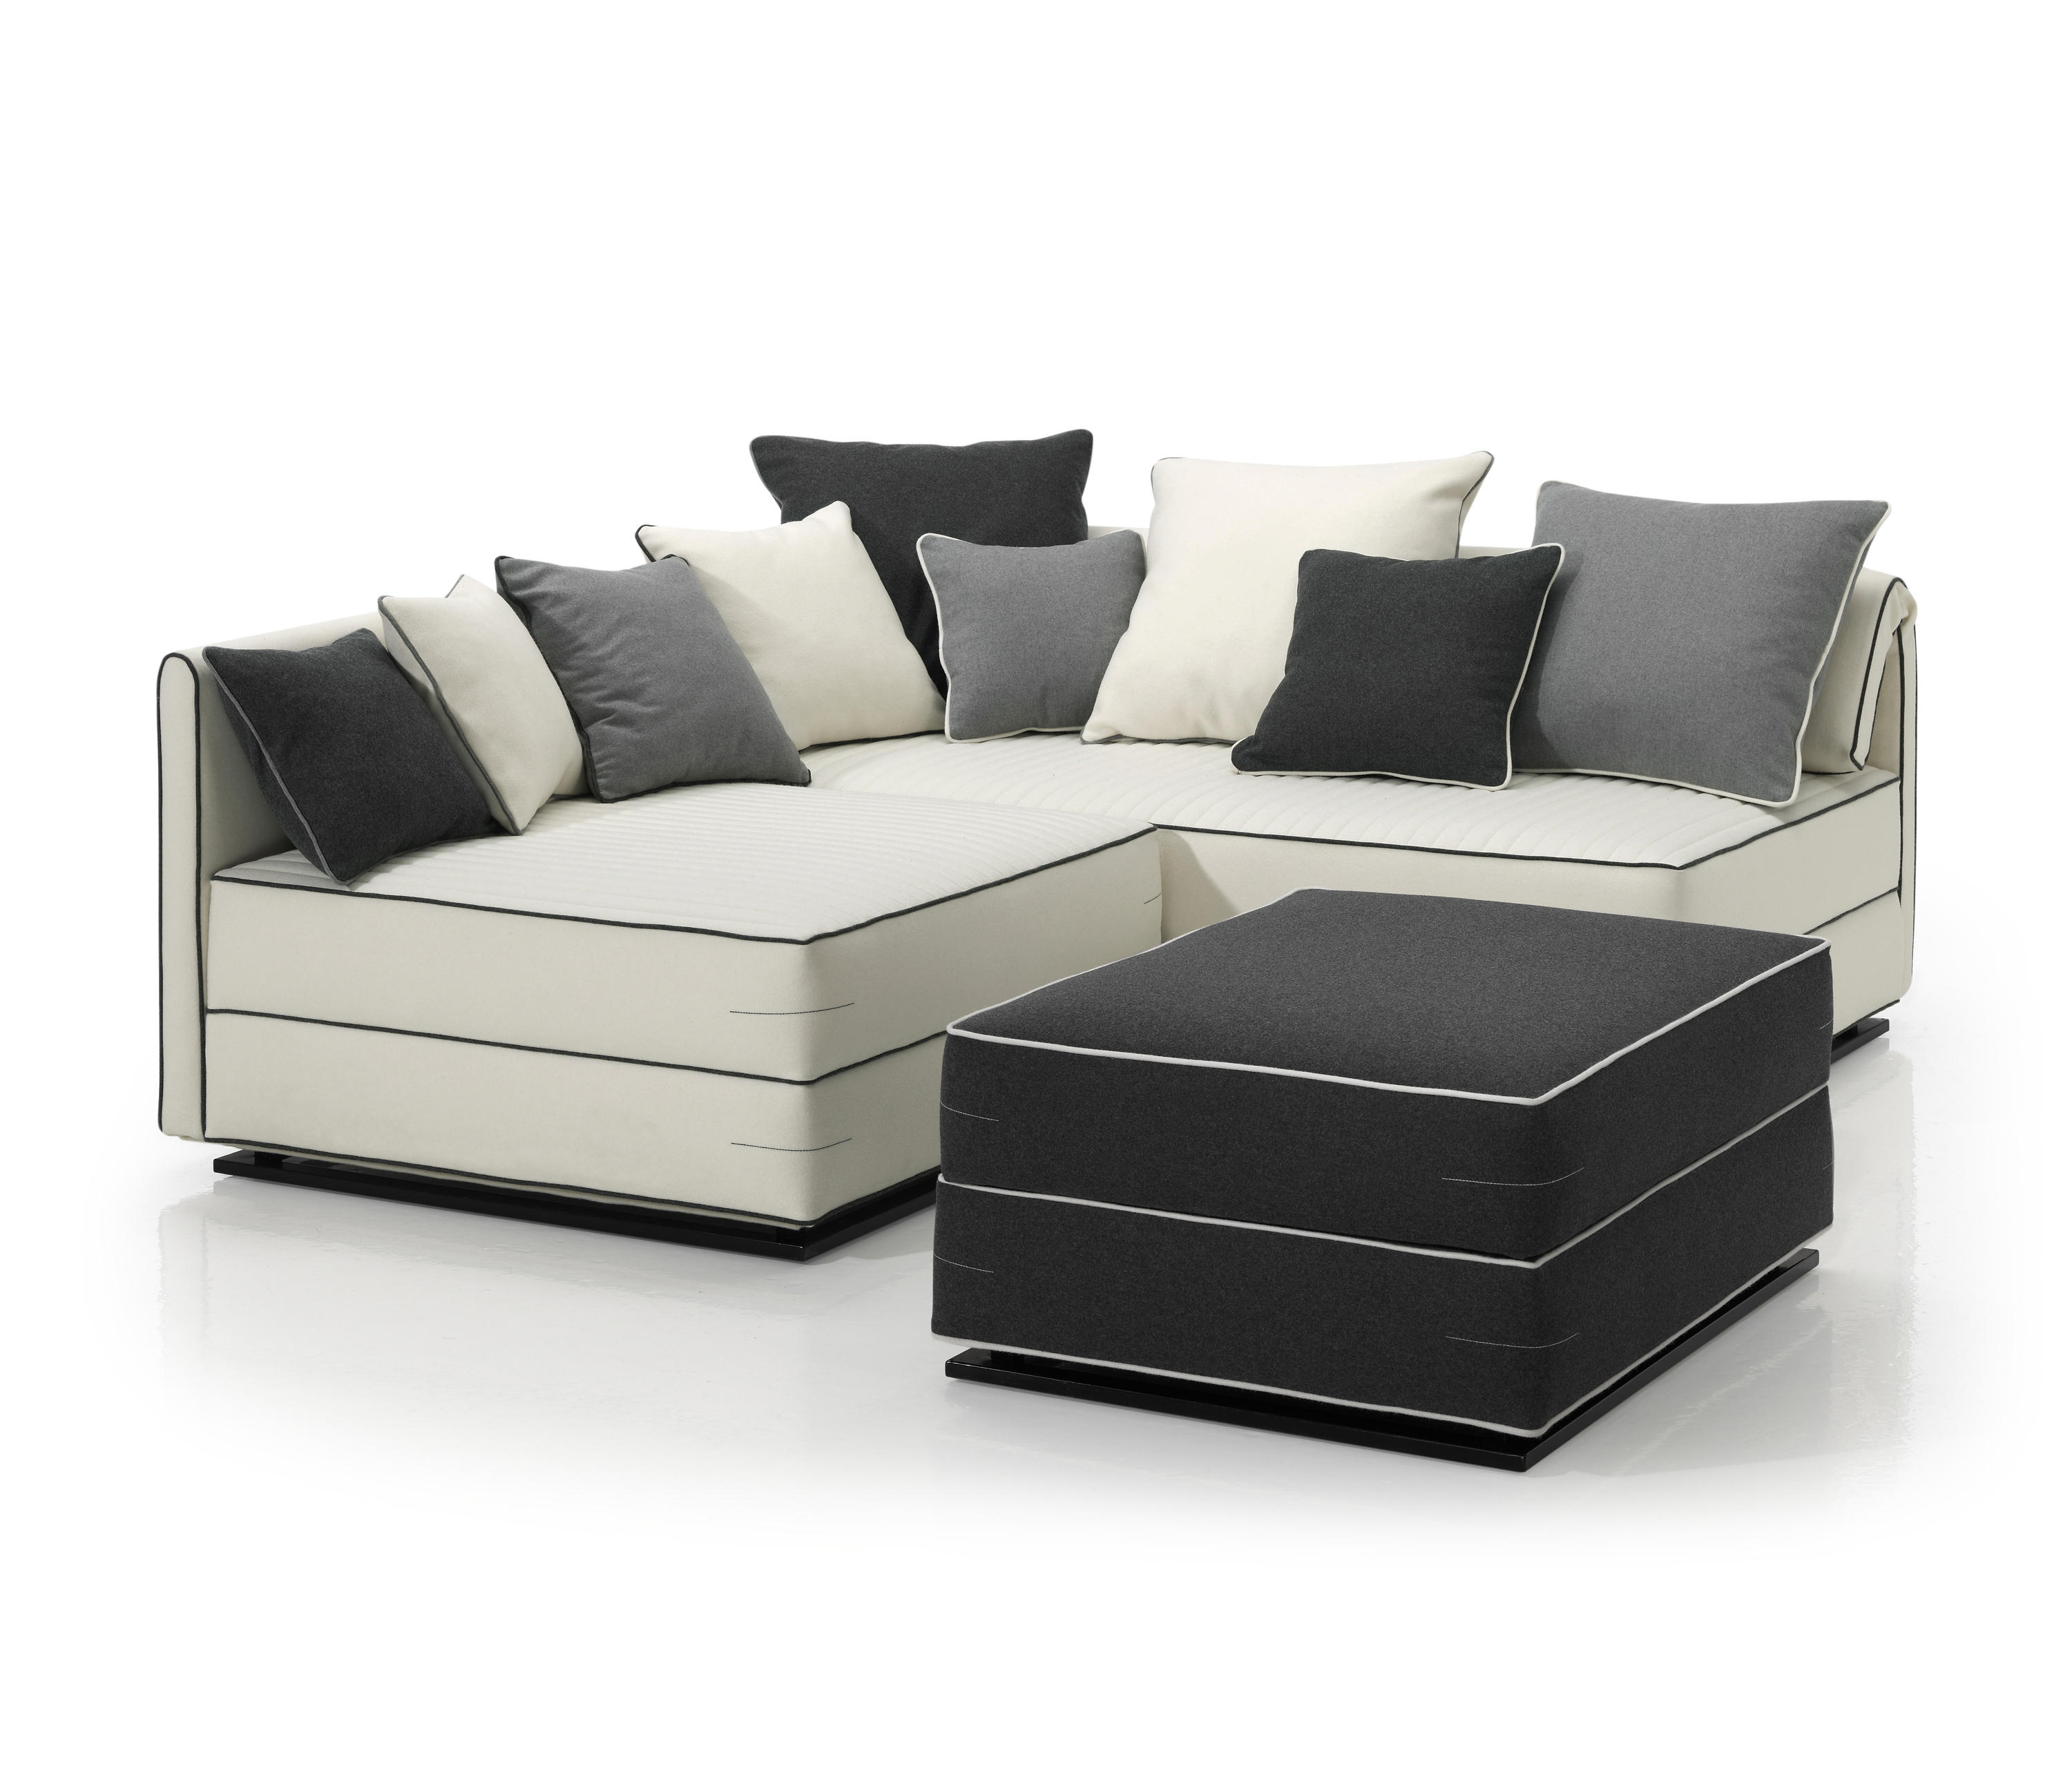 Zaniah sofa beds from ecus architonic for Sofa cama 135 ancho